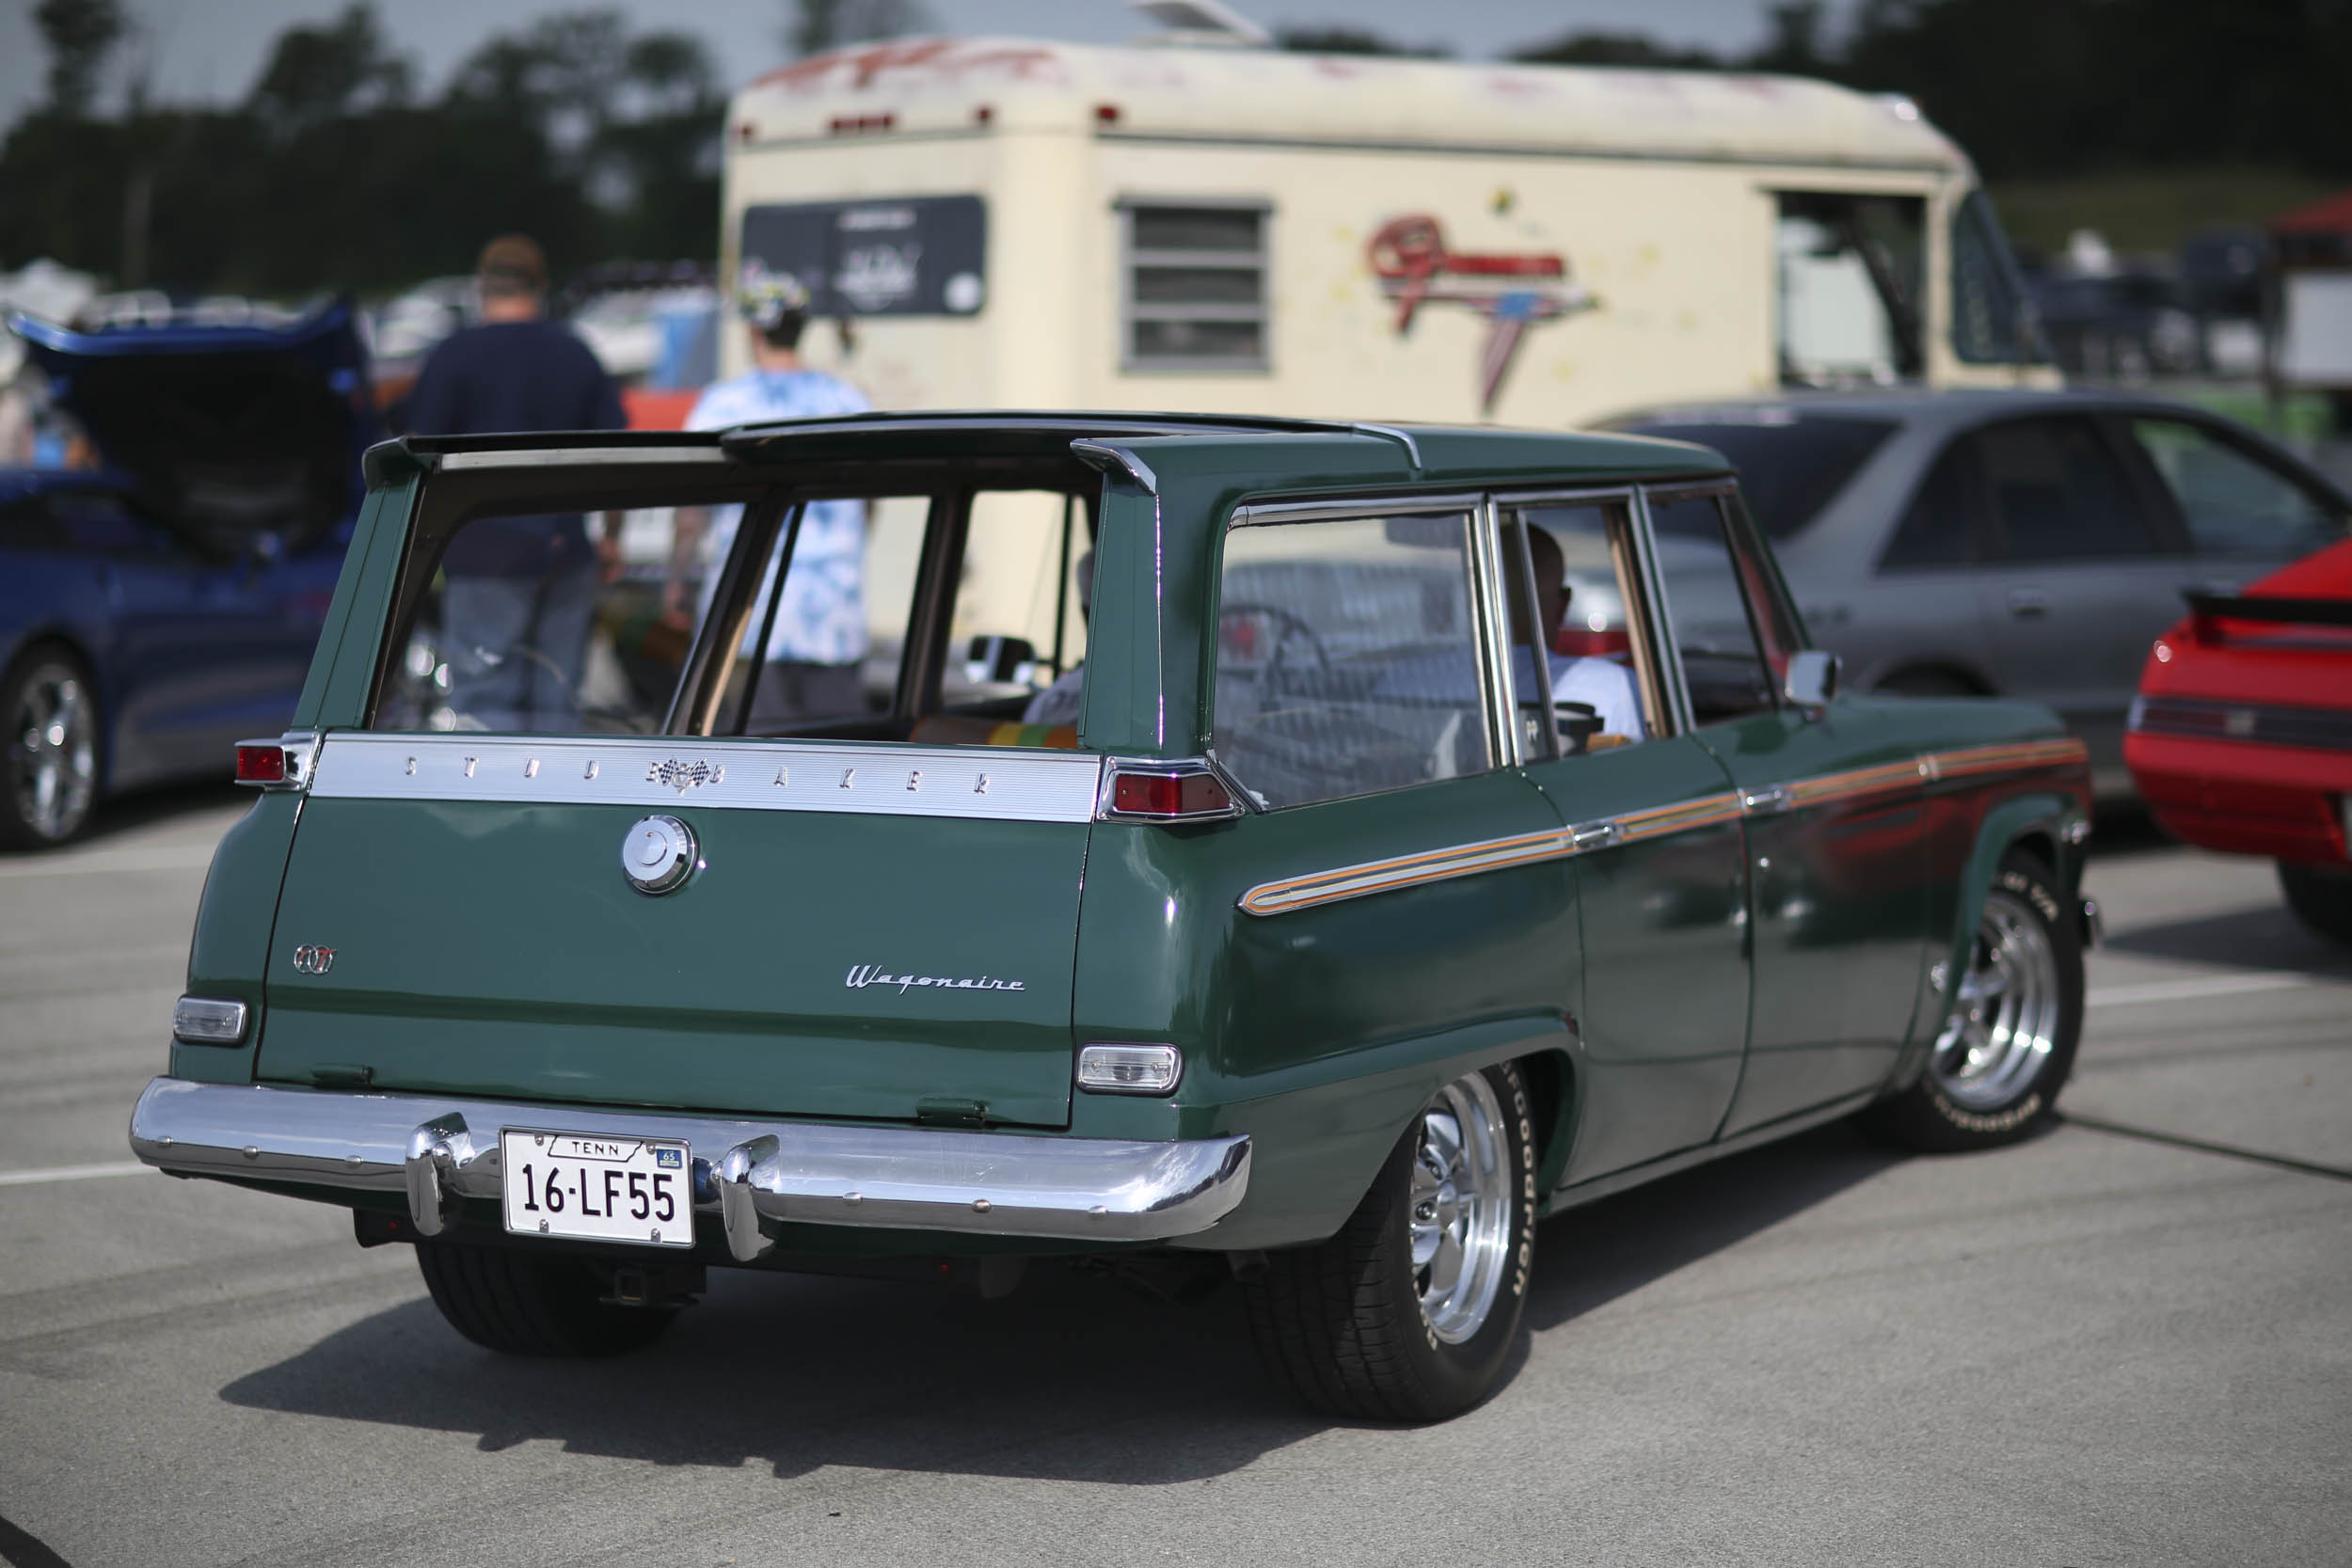 Wagons are perfect for the Power Tour, and we saw dozens of beautiful longroofs. This rare Studebaker Wagonaire, with its retractable rear roof panel, drew plenty of attention.